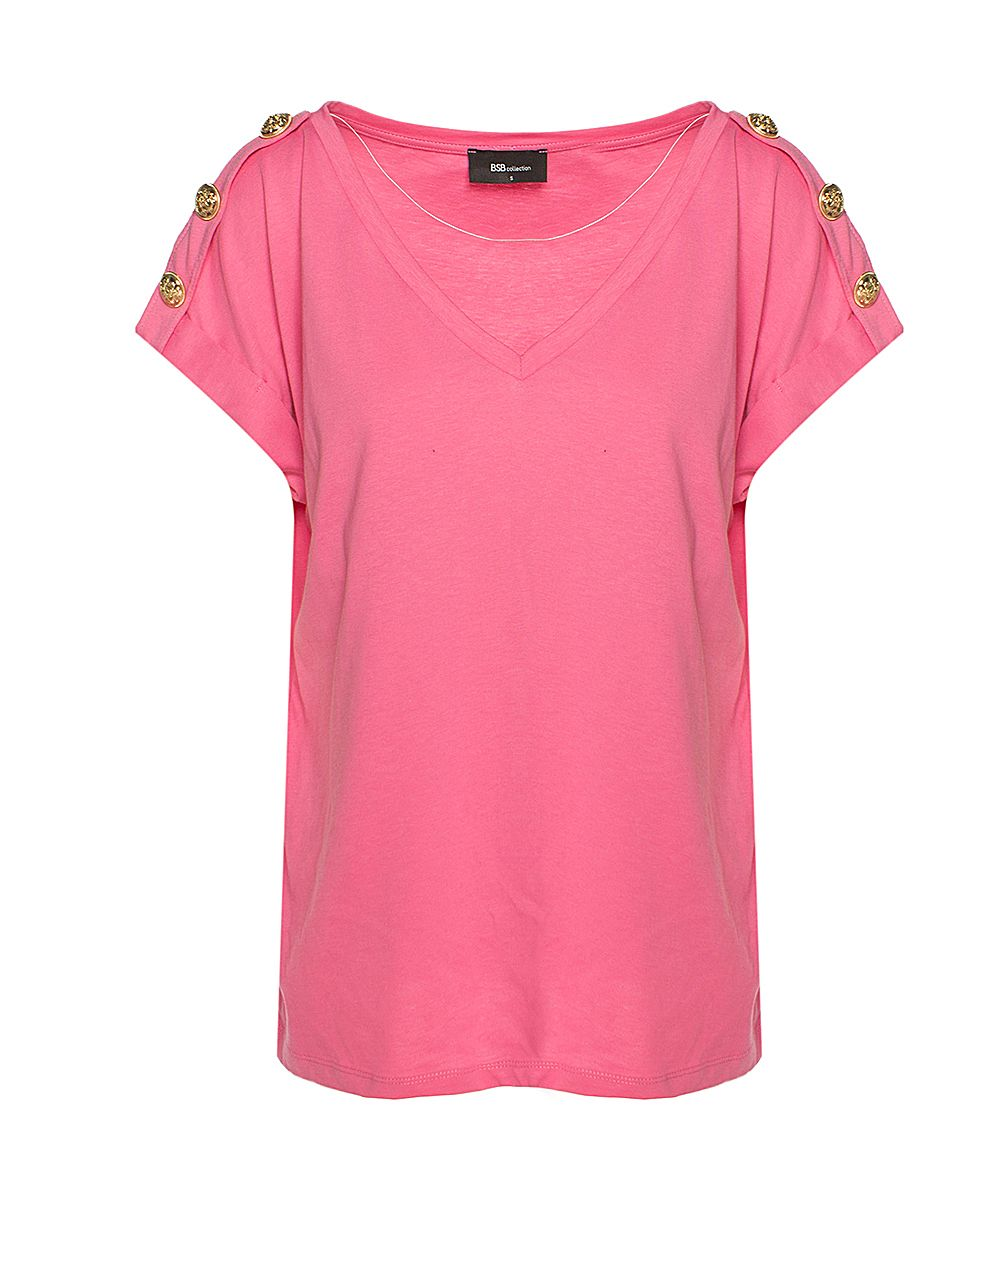 T-SHIRT WITH DECORATIVE BUTTONS